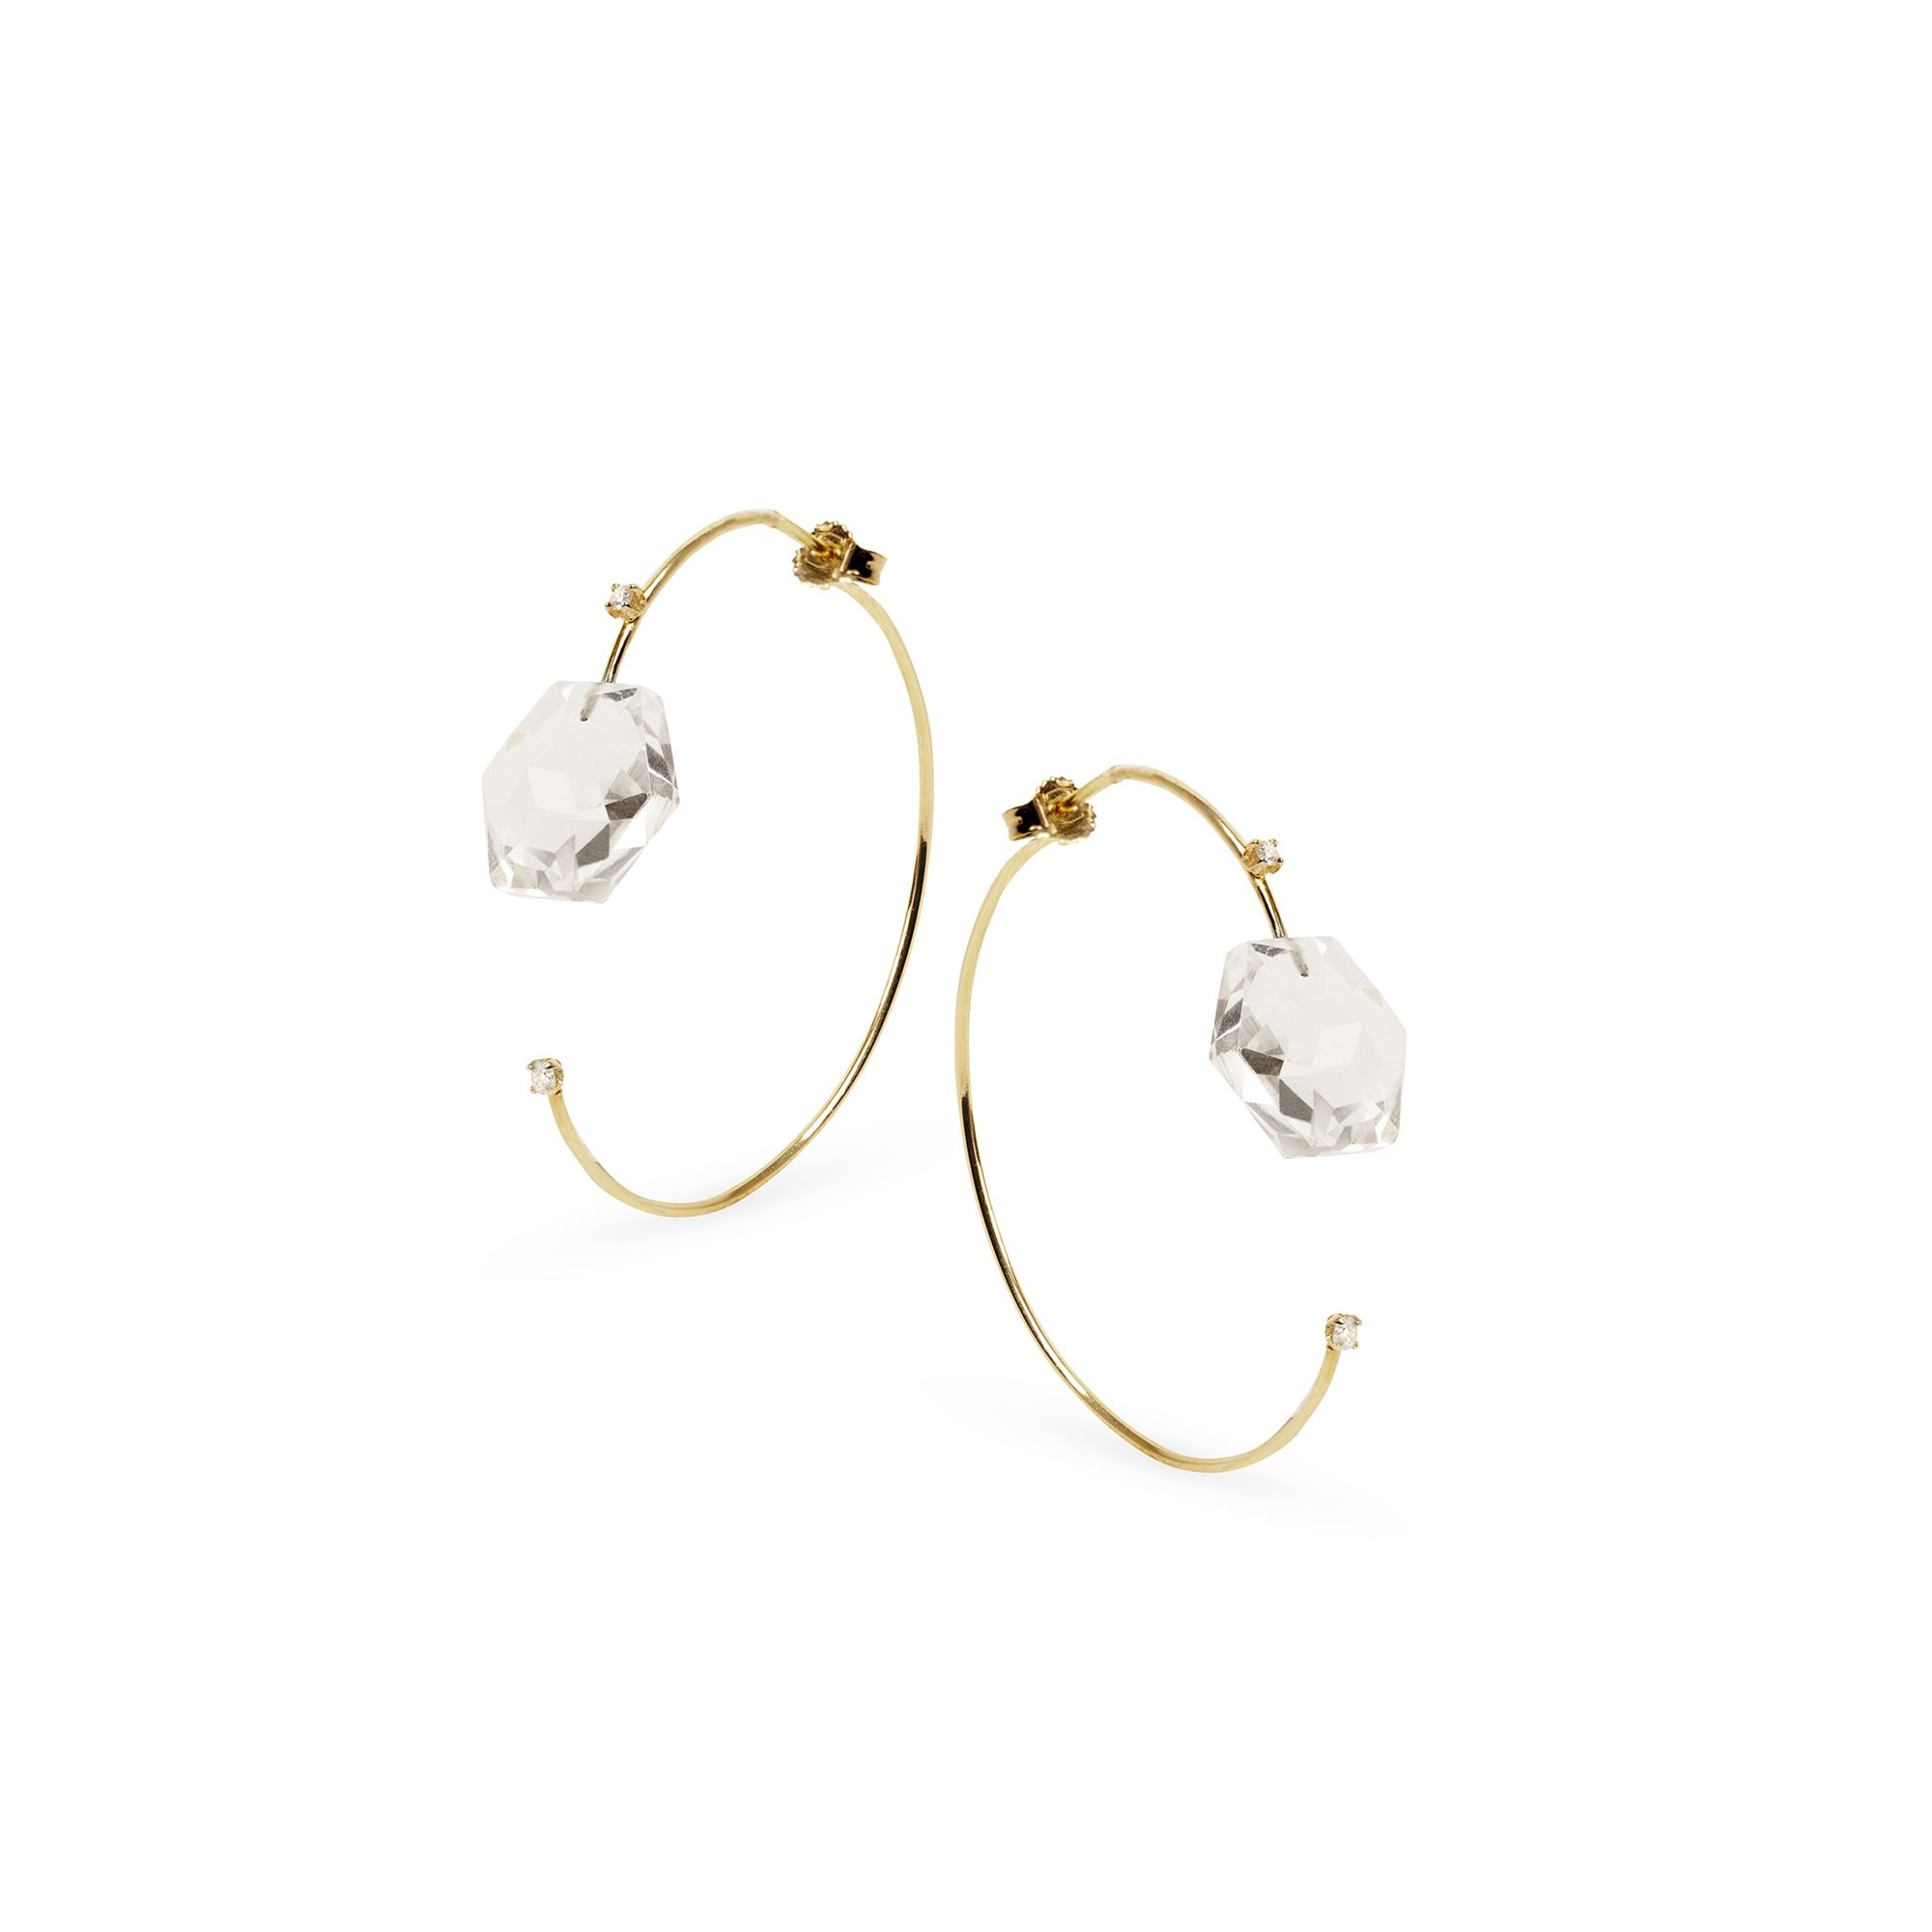 Front-back 'Ami' hoop earrings  Earrings in yellow gold, diamonds and crystals